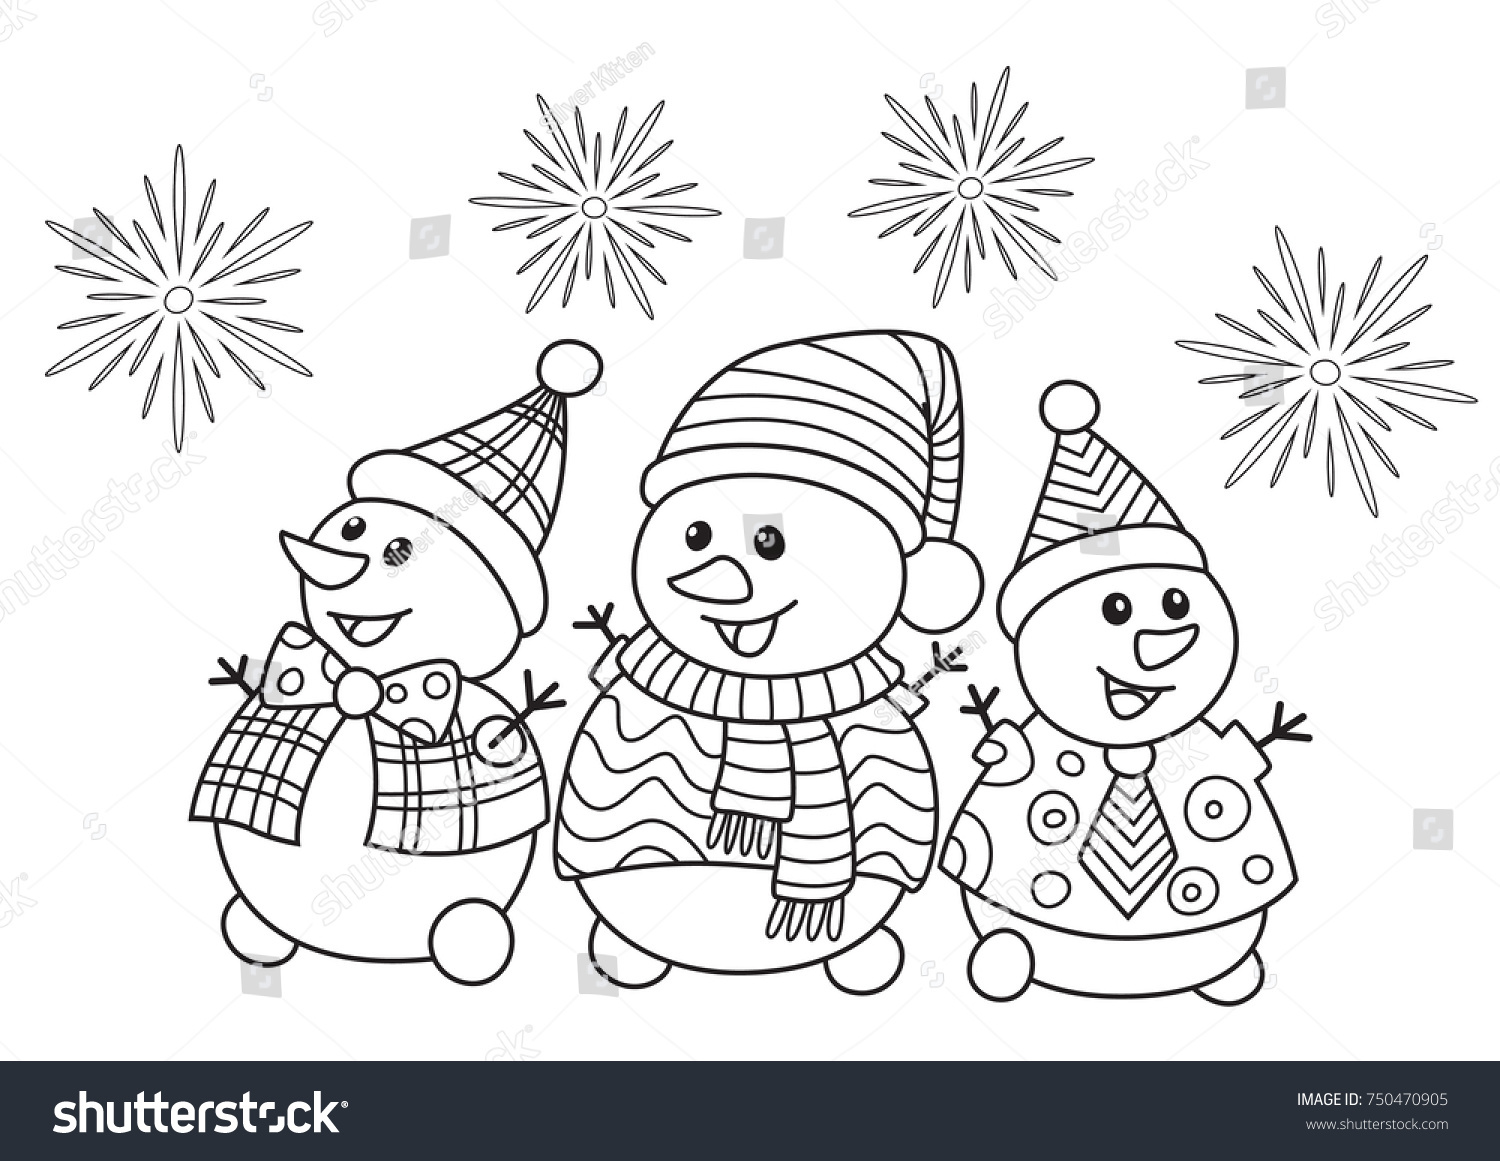 Christmas Coloring Book Vector With Outlined Doodle Antistress Funny Stock